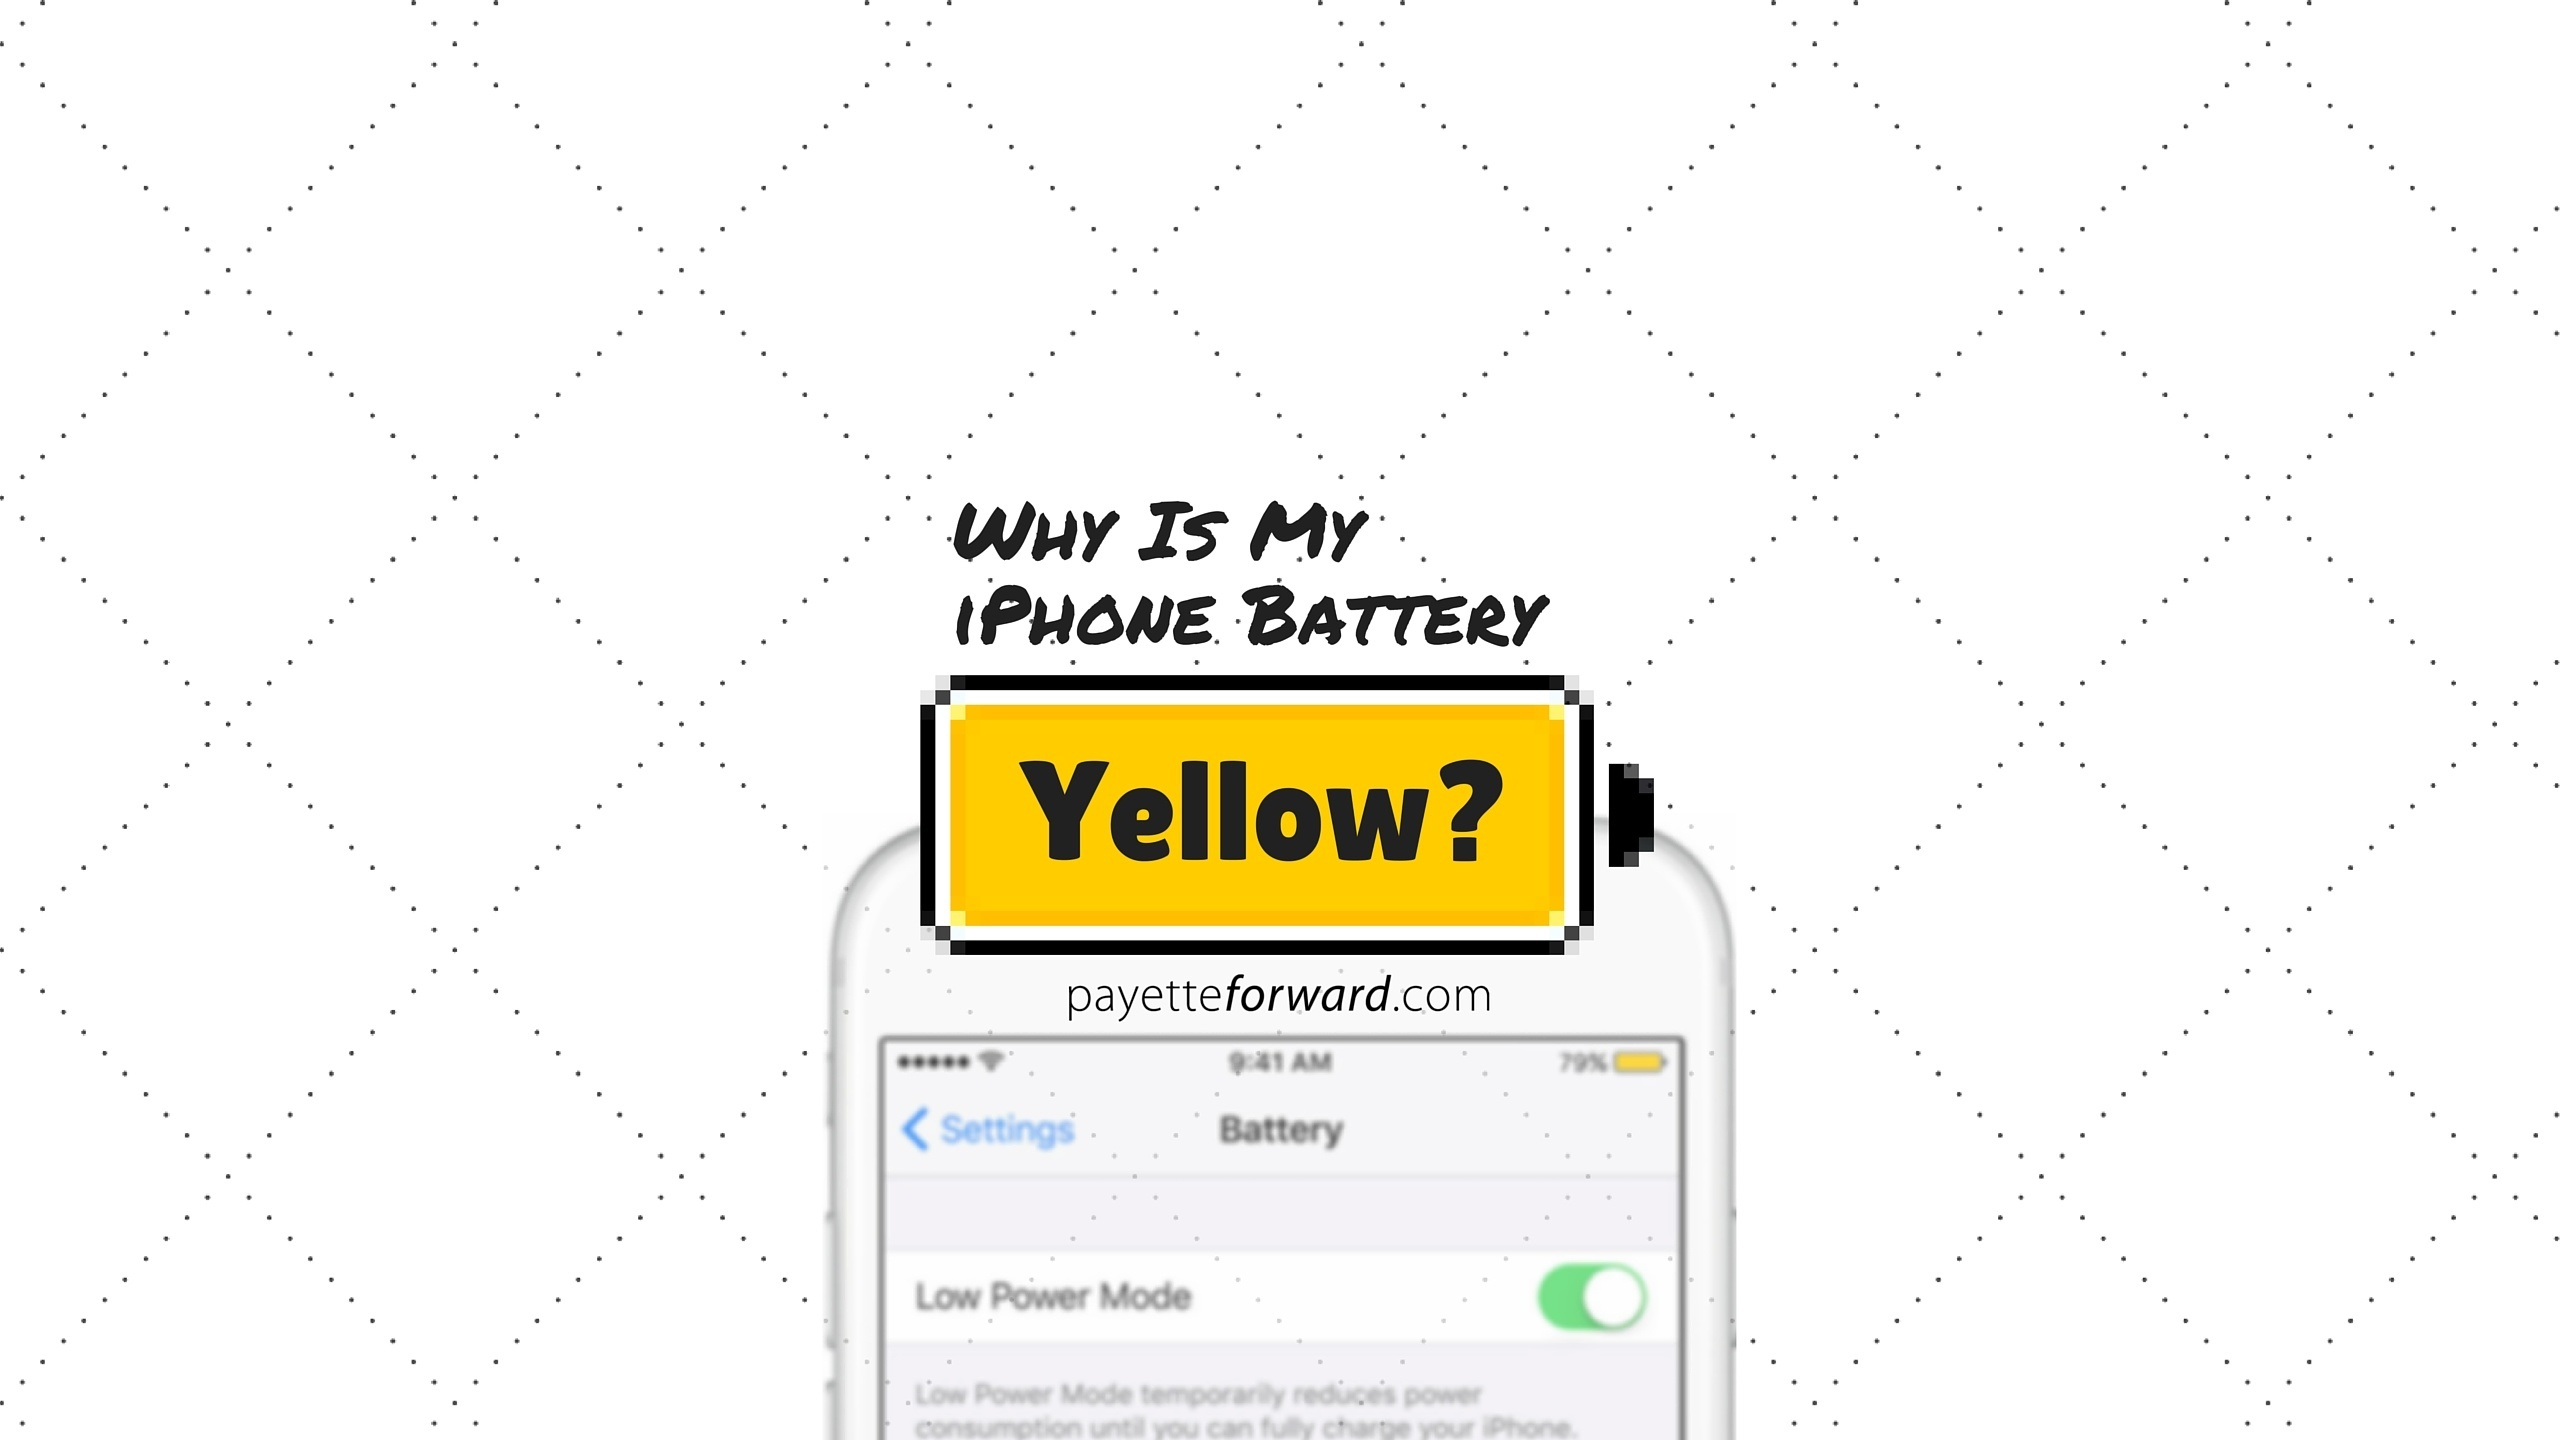 Battery Symbol Iphone Why Is My Iphone Battery Yellow Here 39s The Fix